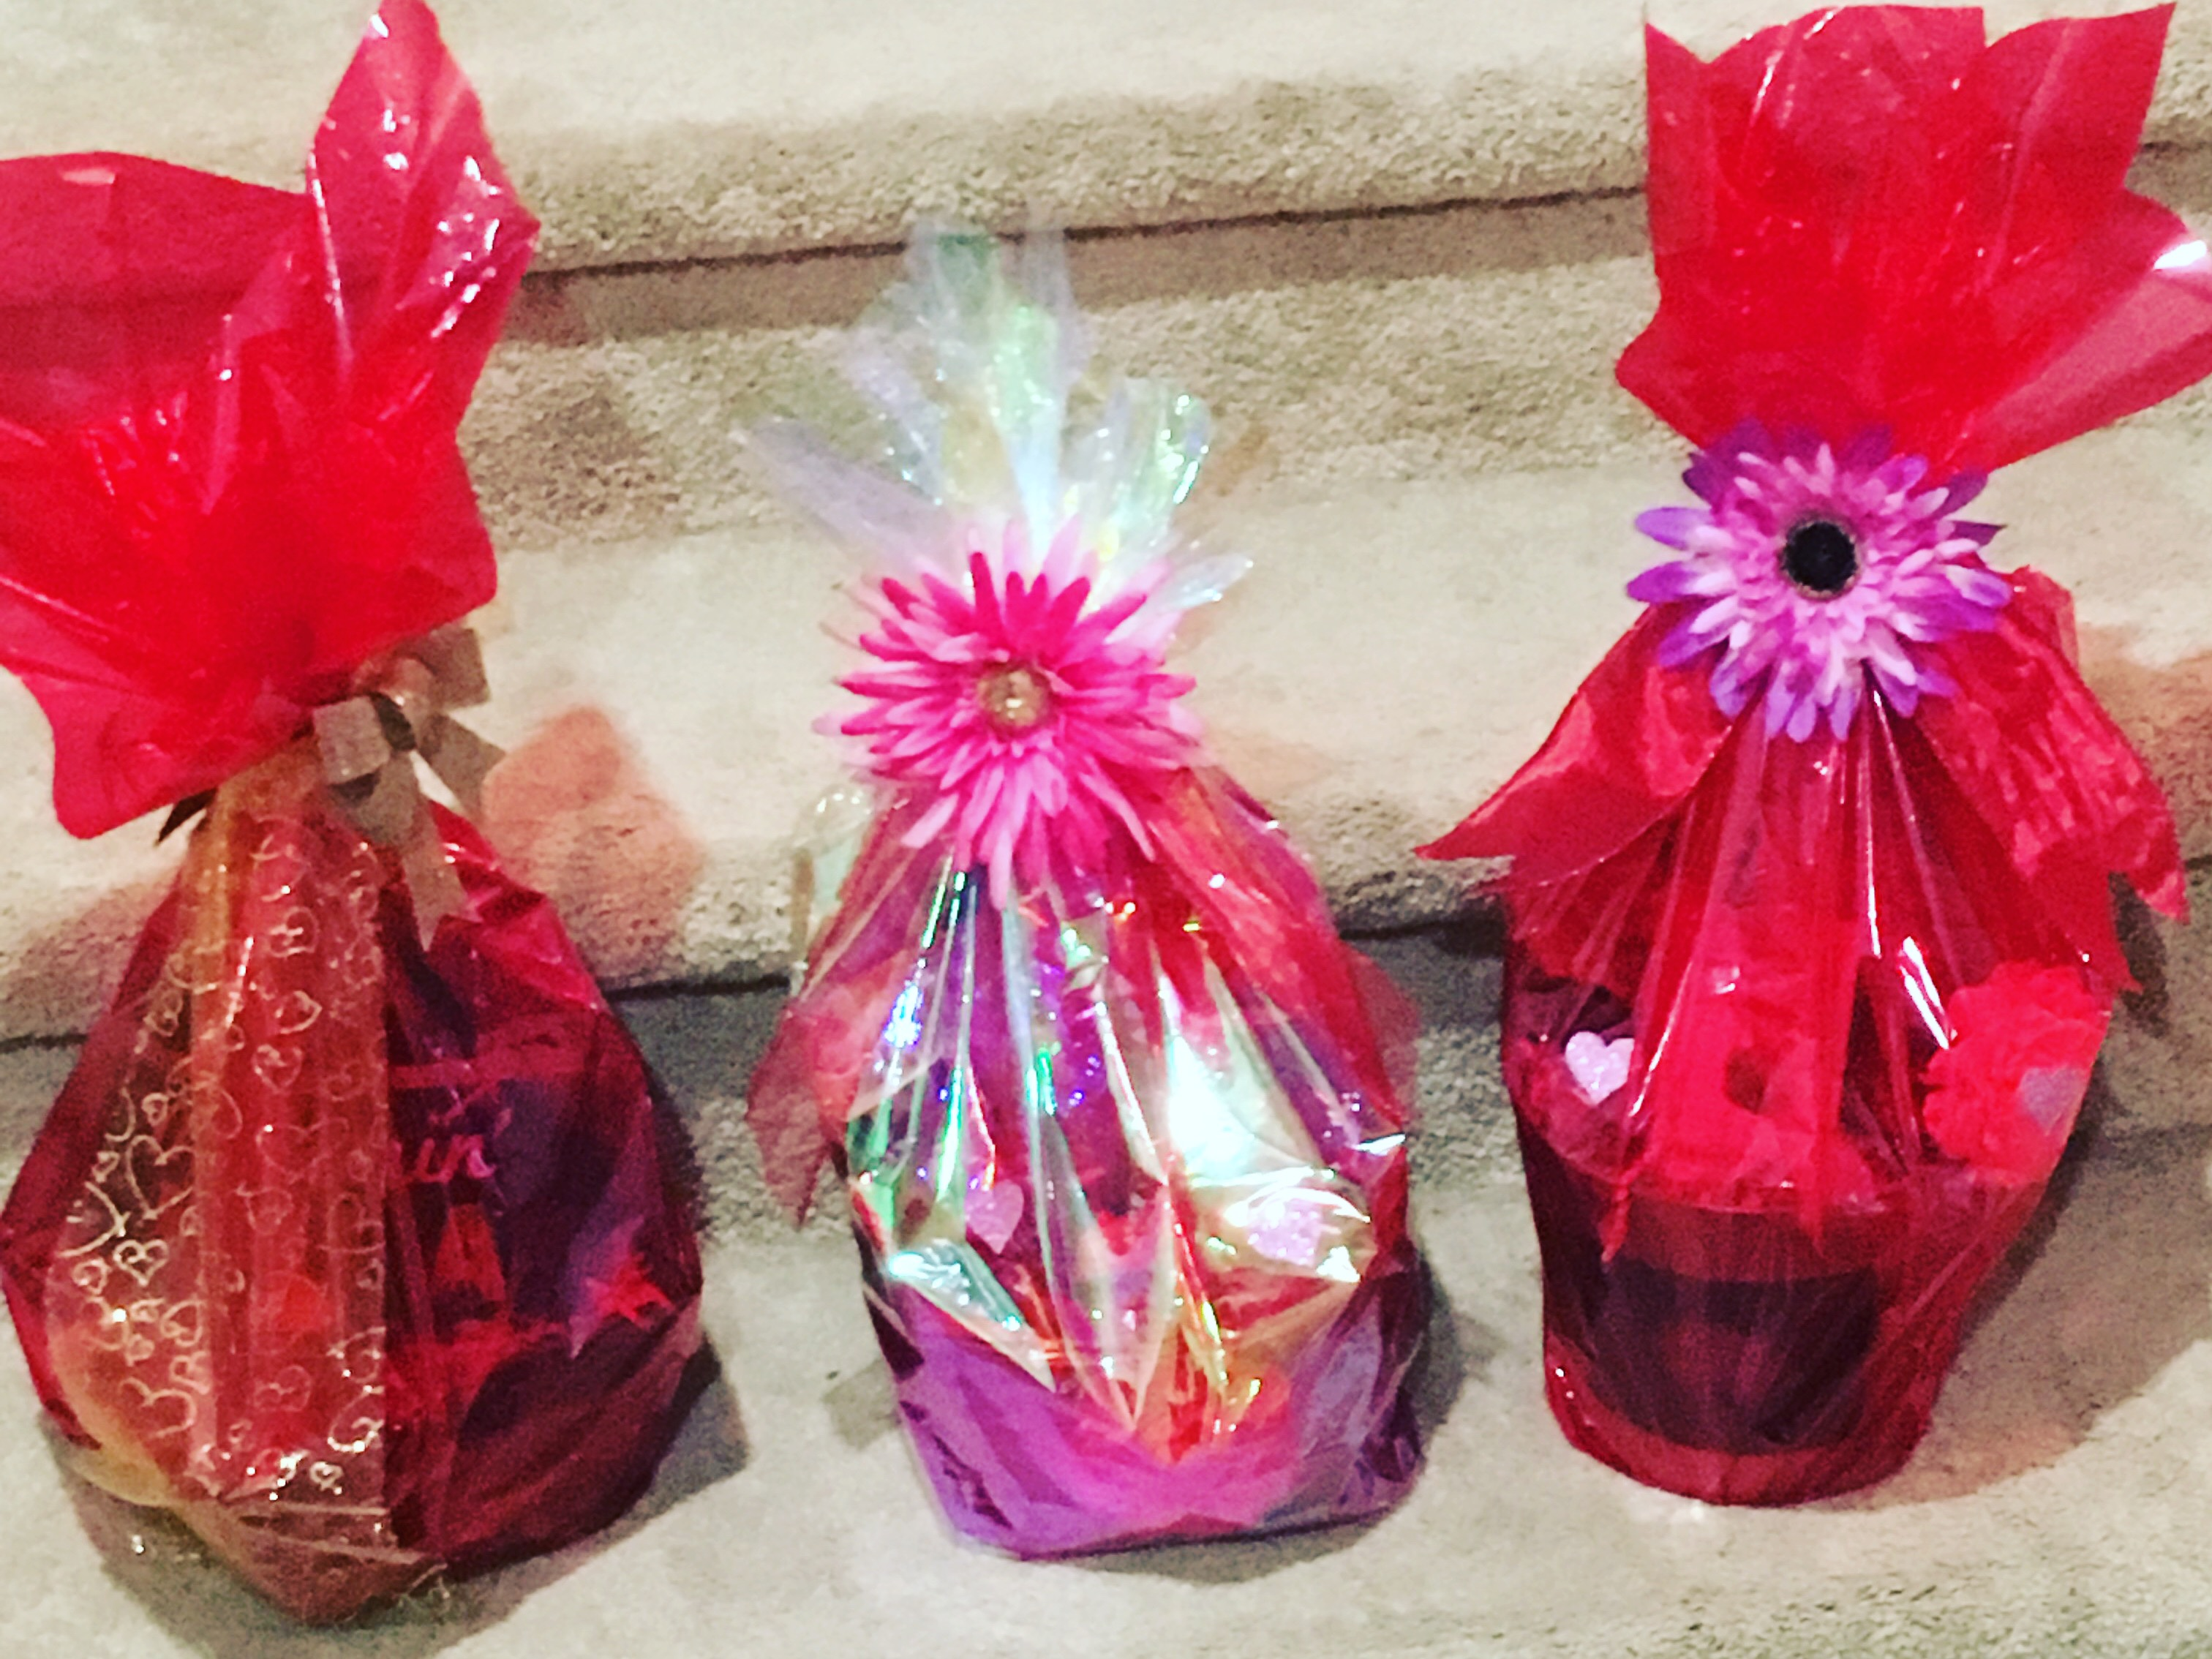 The Reason is You~ Gift Baskets – Put together just for you because ...